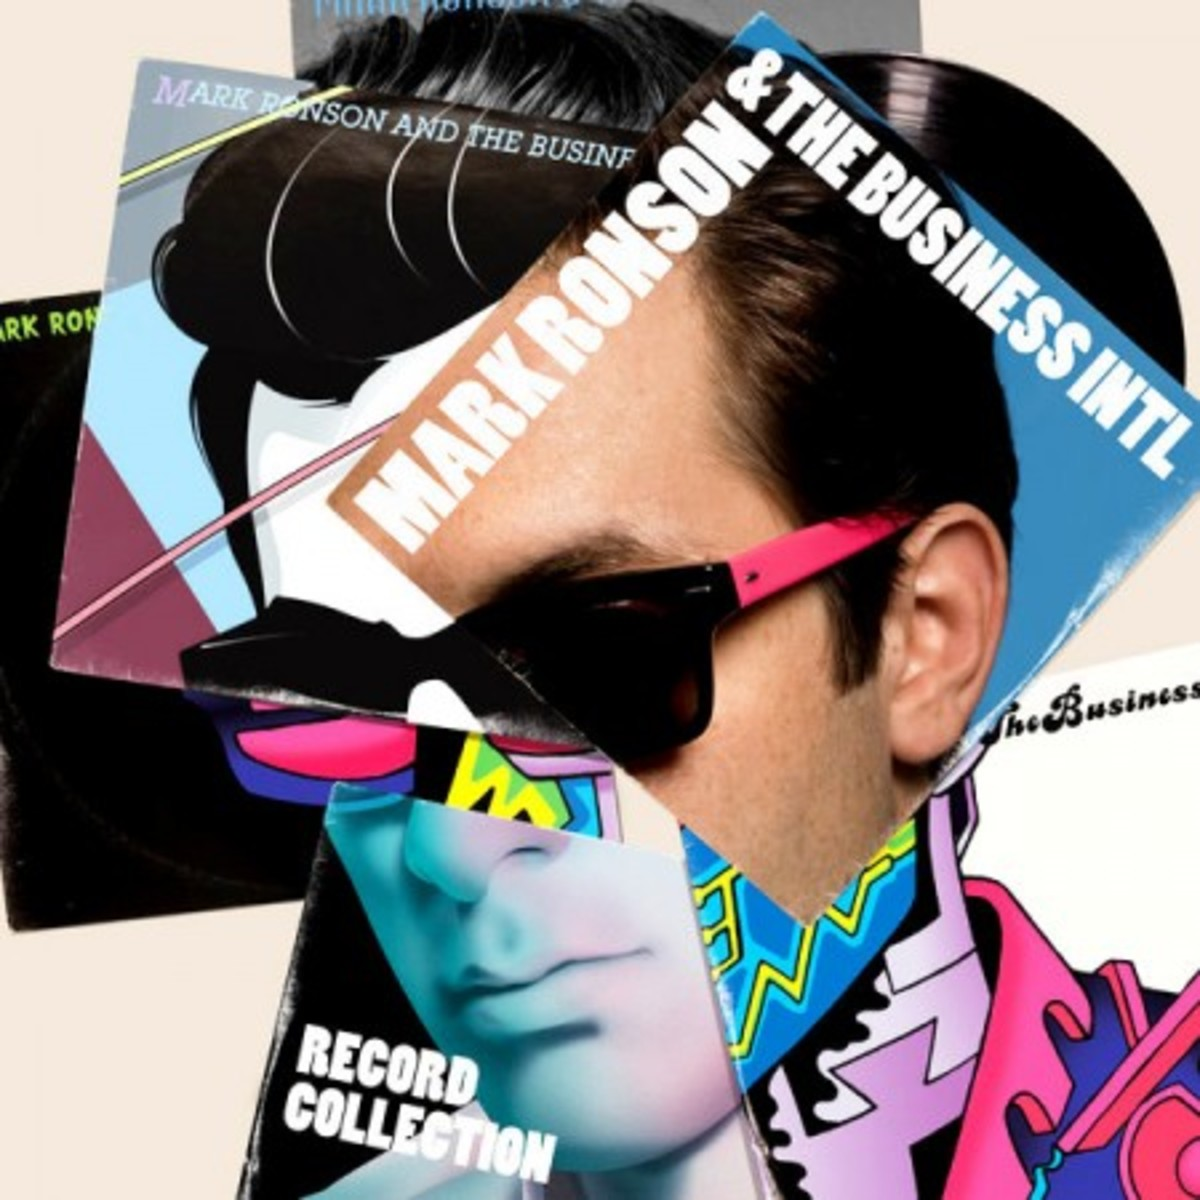 mark-ronson-record-collection-450x450